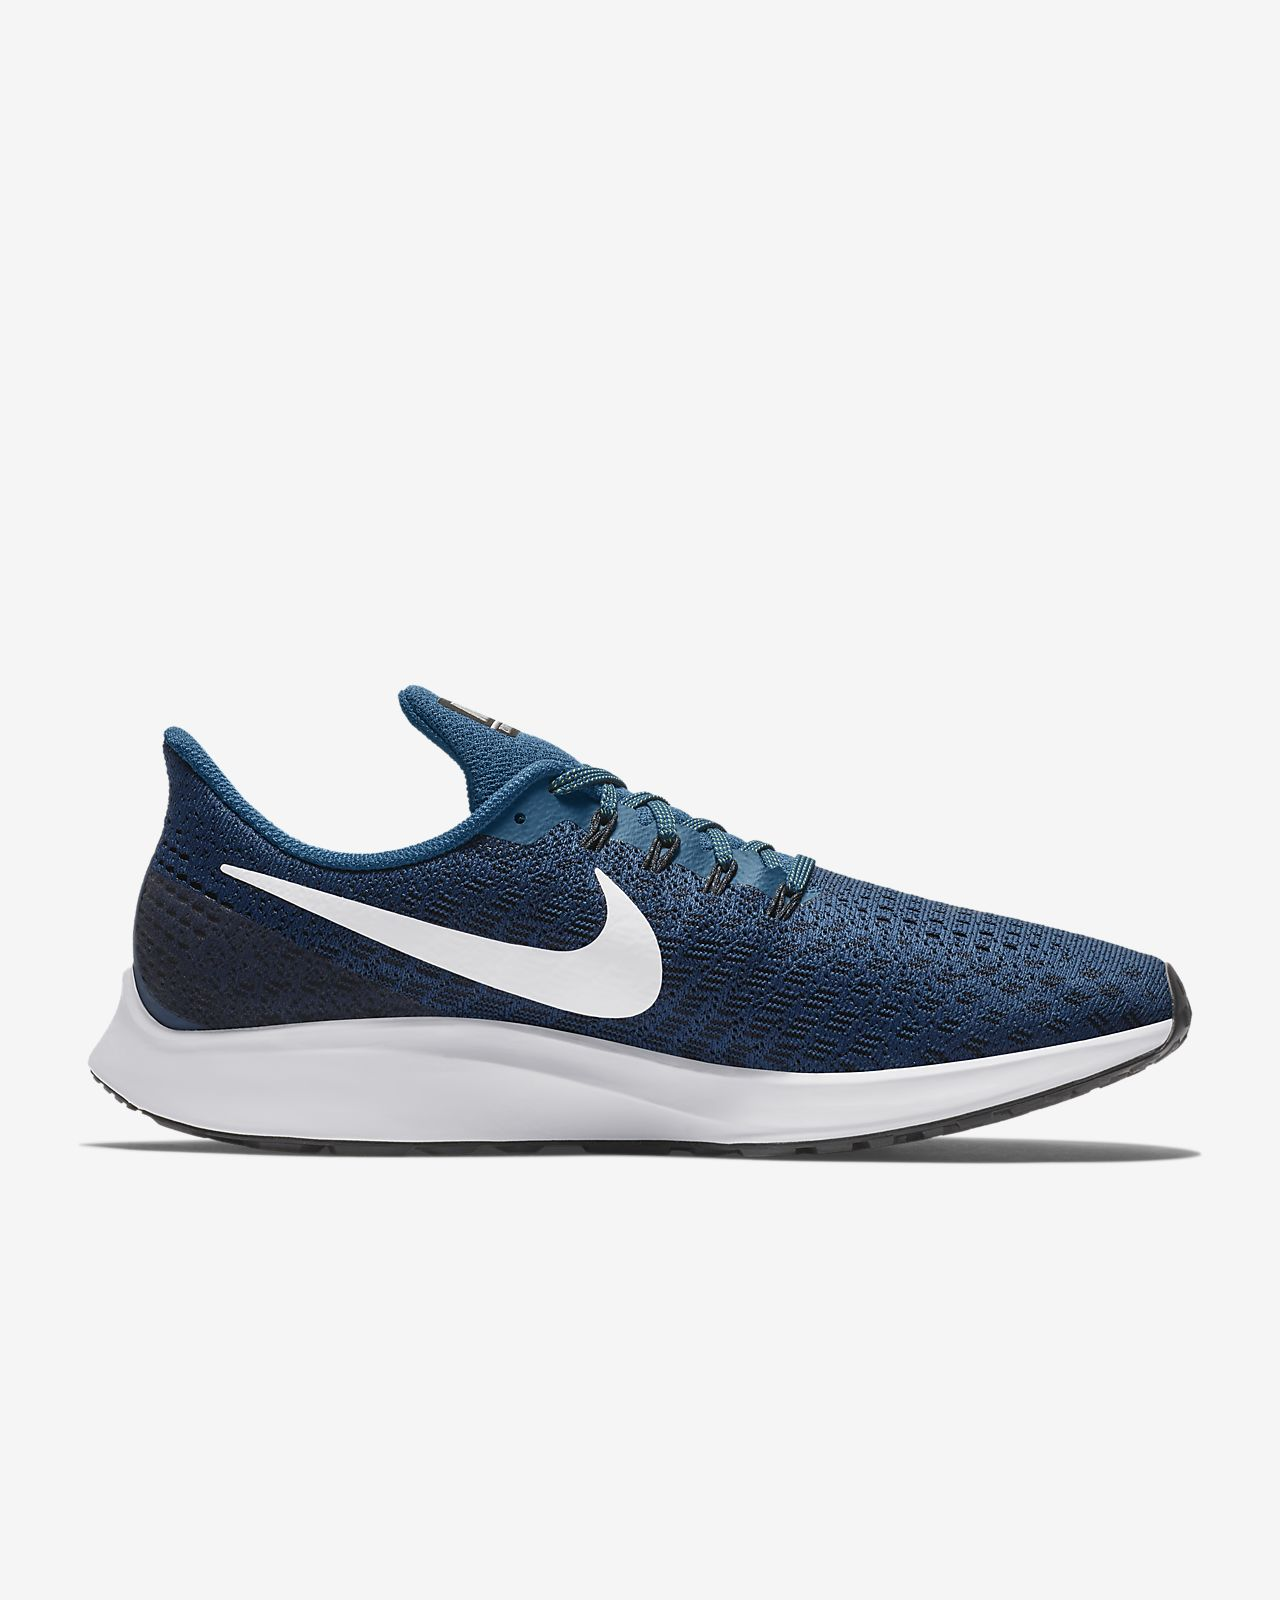 74484fc34773 Nike Air Zoom Pegasus 35 Men s Running Shoe. Nike.com CA